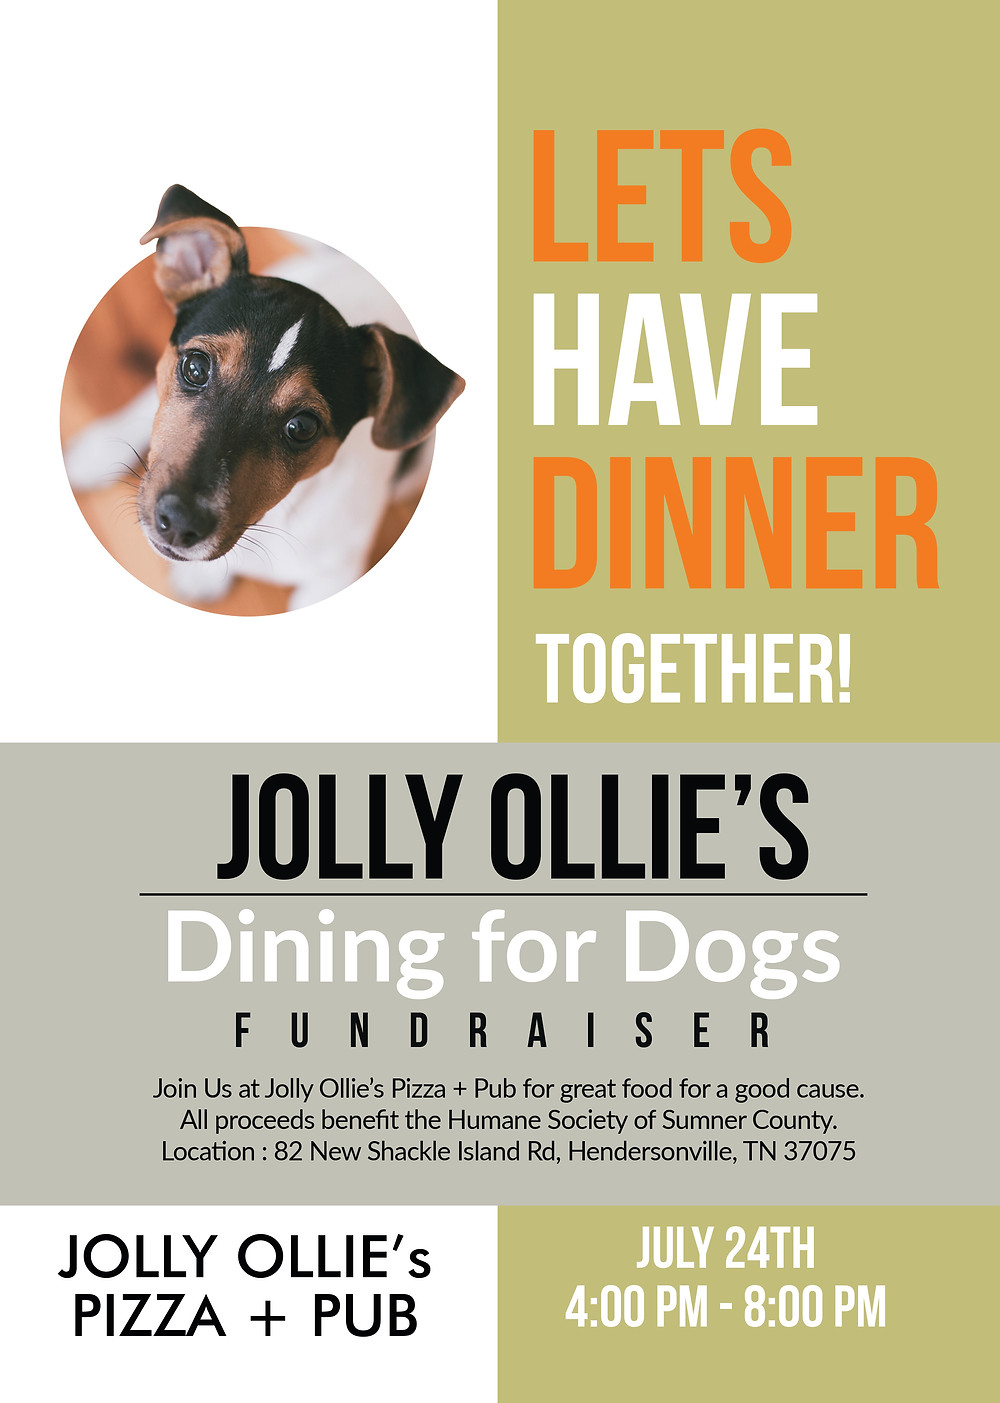 dining for dogs at Jolly Ollie's Pizza + Pub in Hendersonville TN